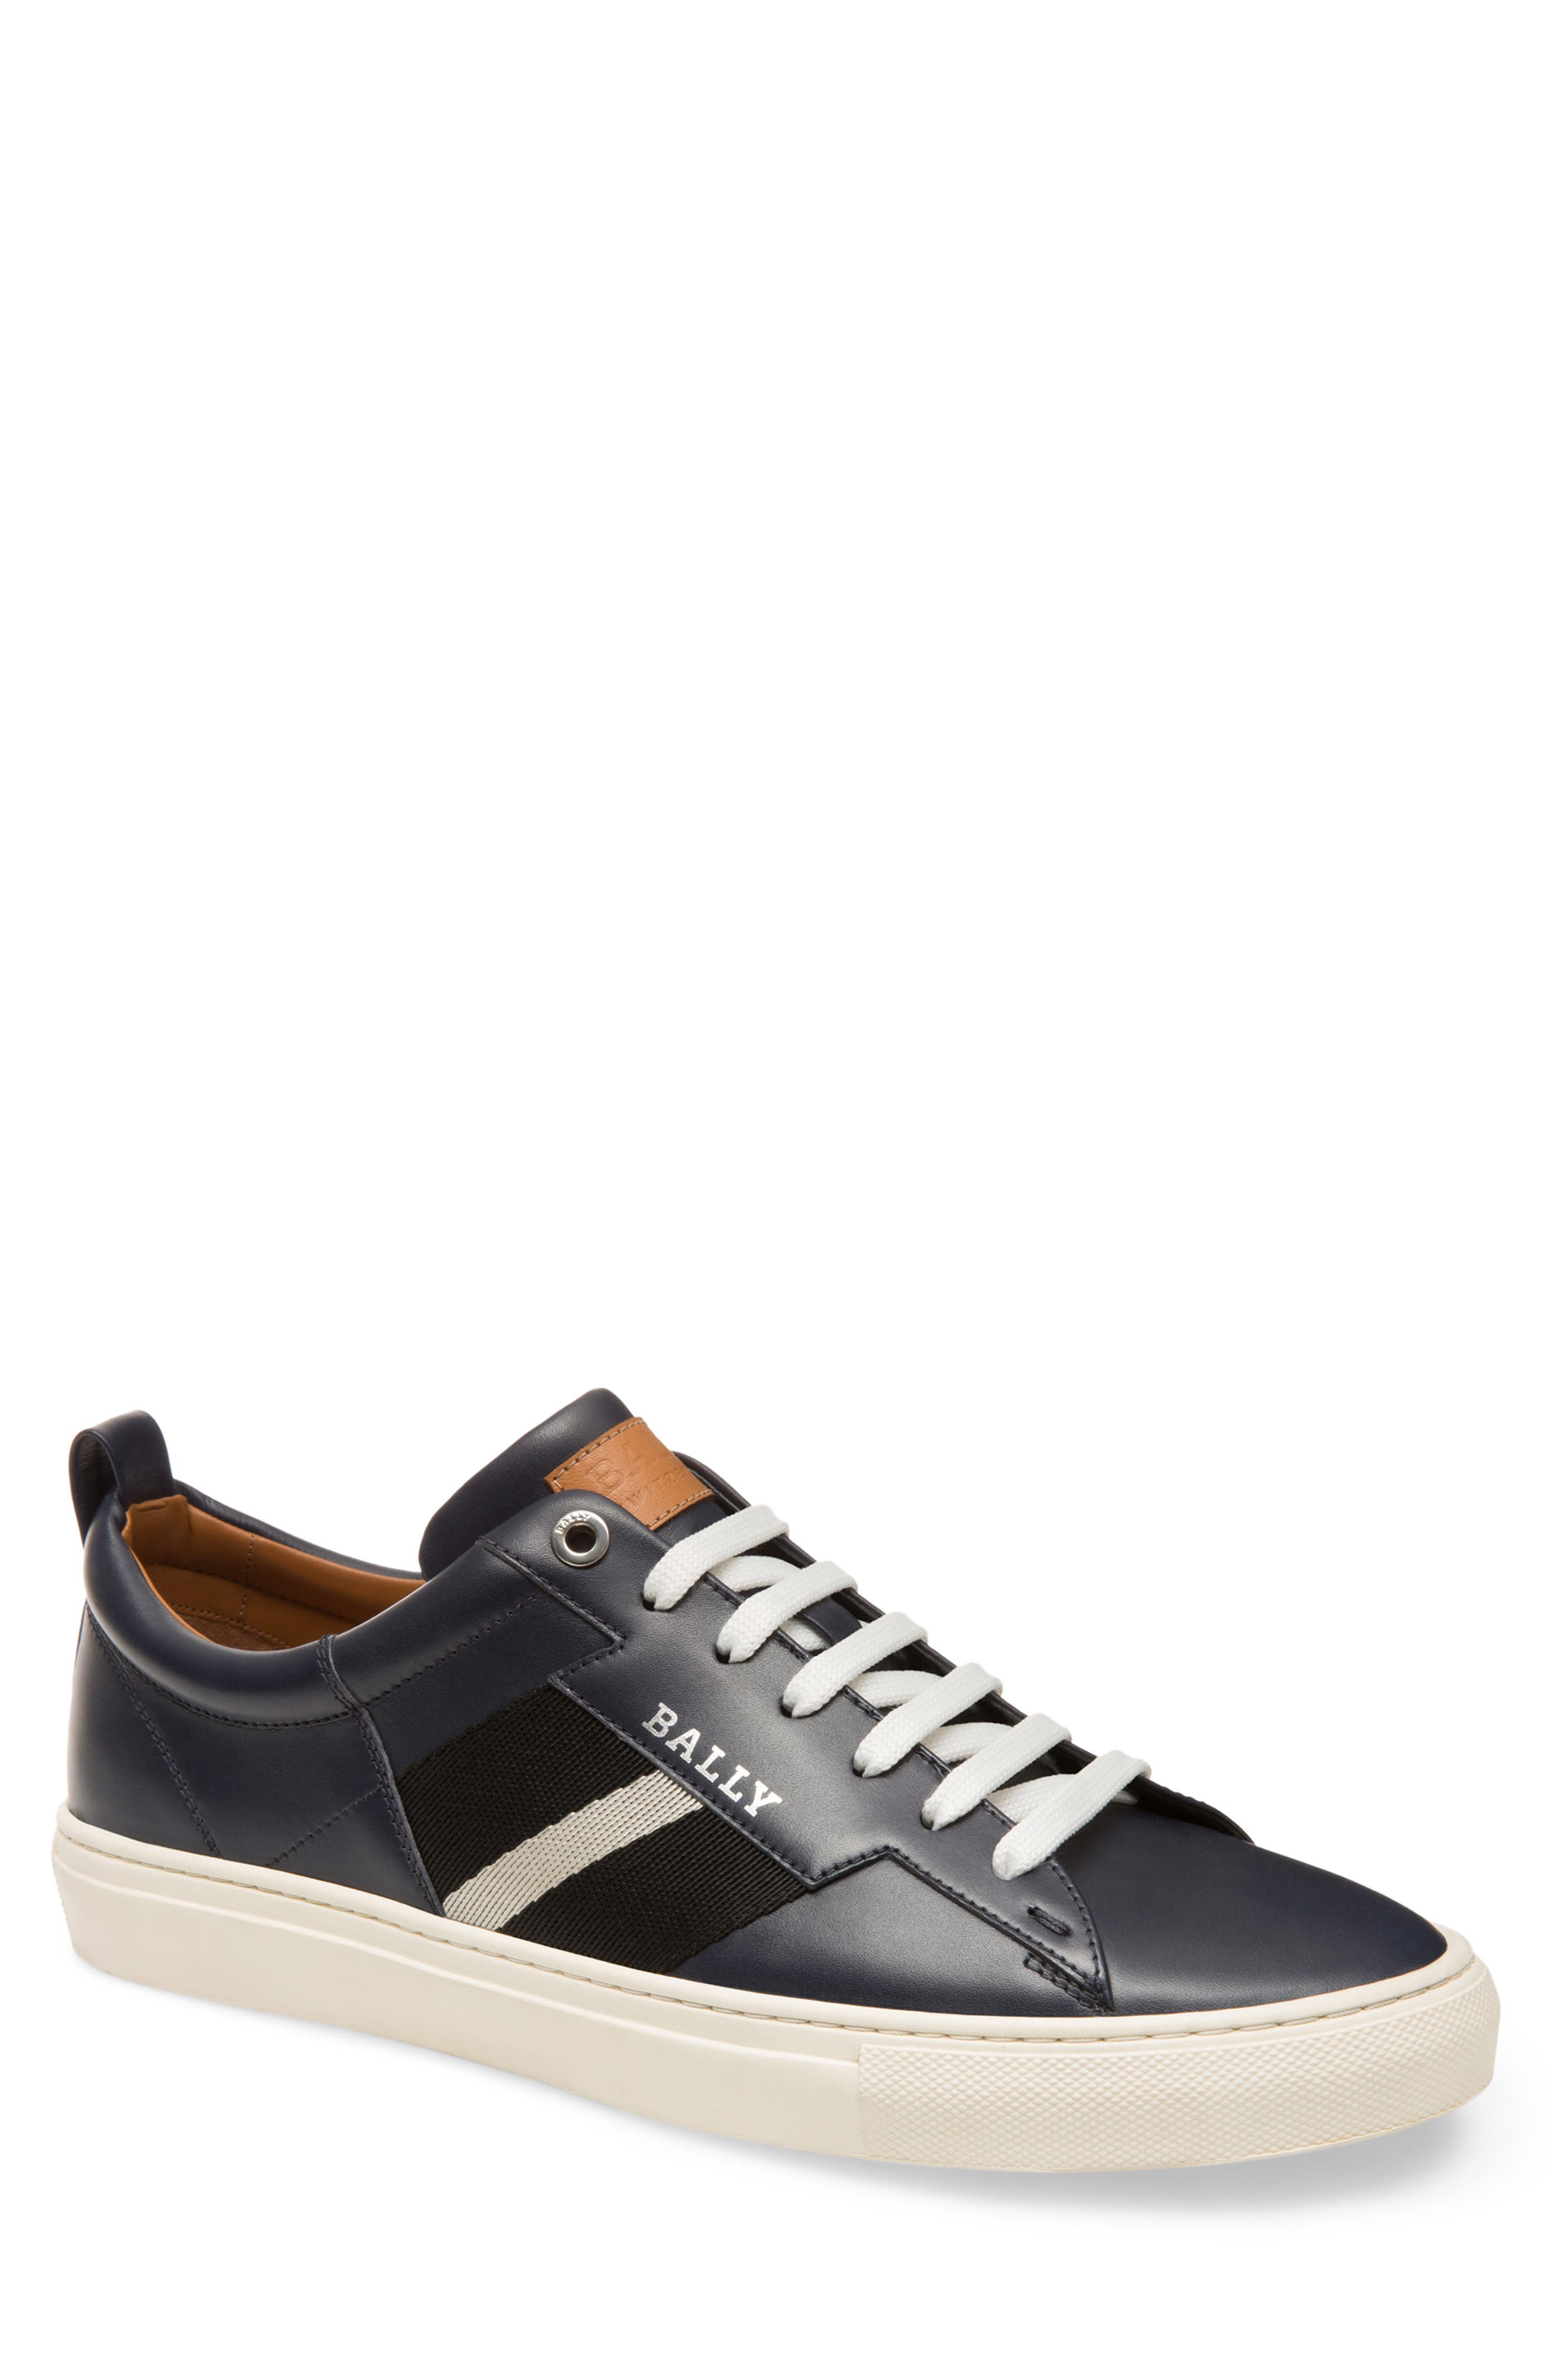 85ac10bdb42c3 Bally - Men s Casual Fashion Shoes and Sneakers